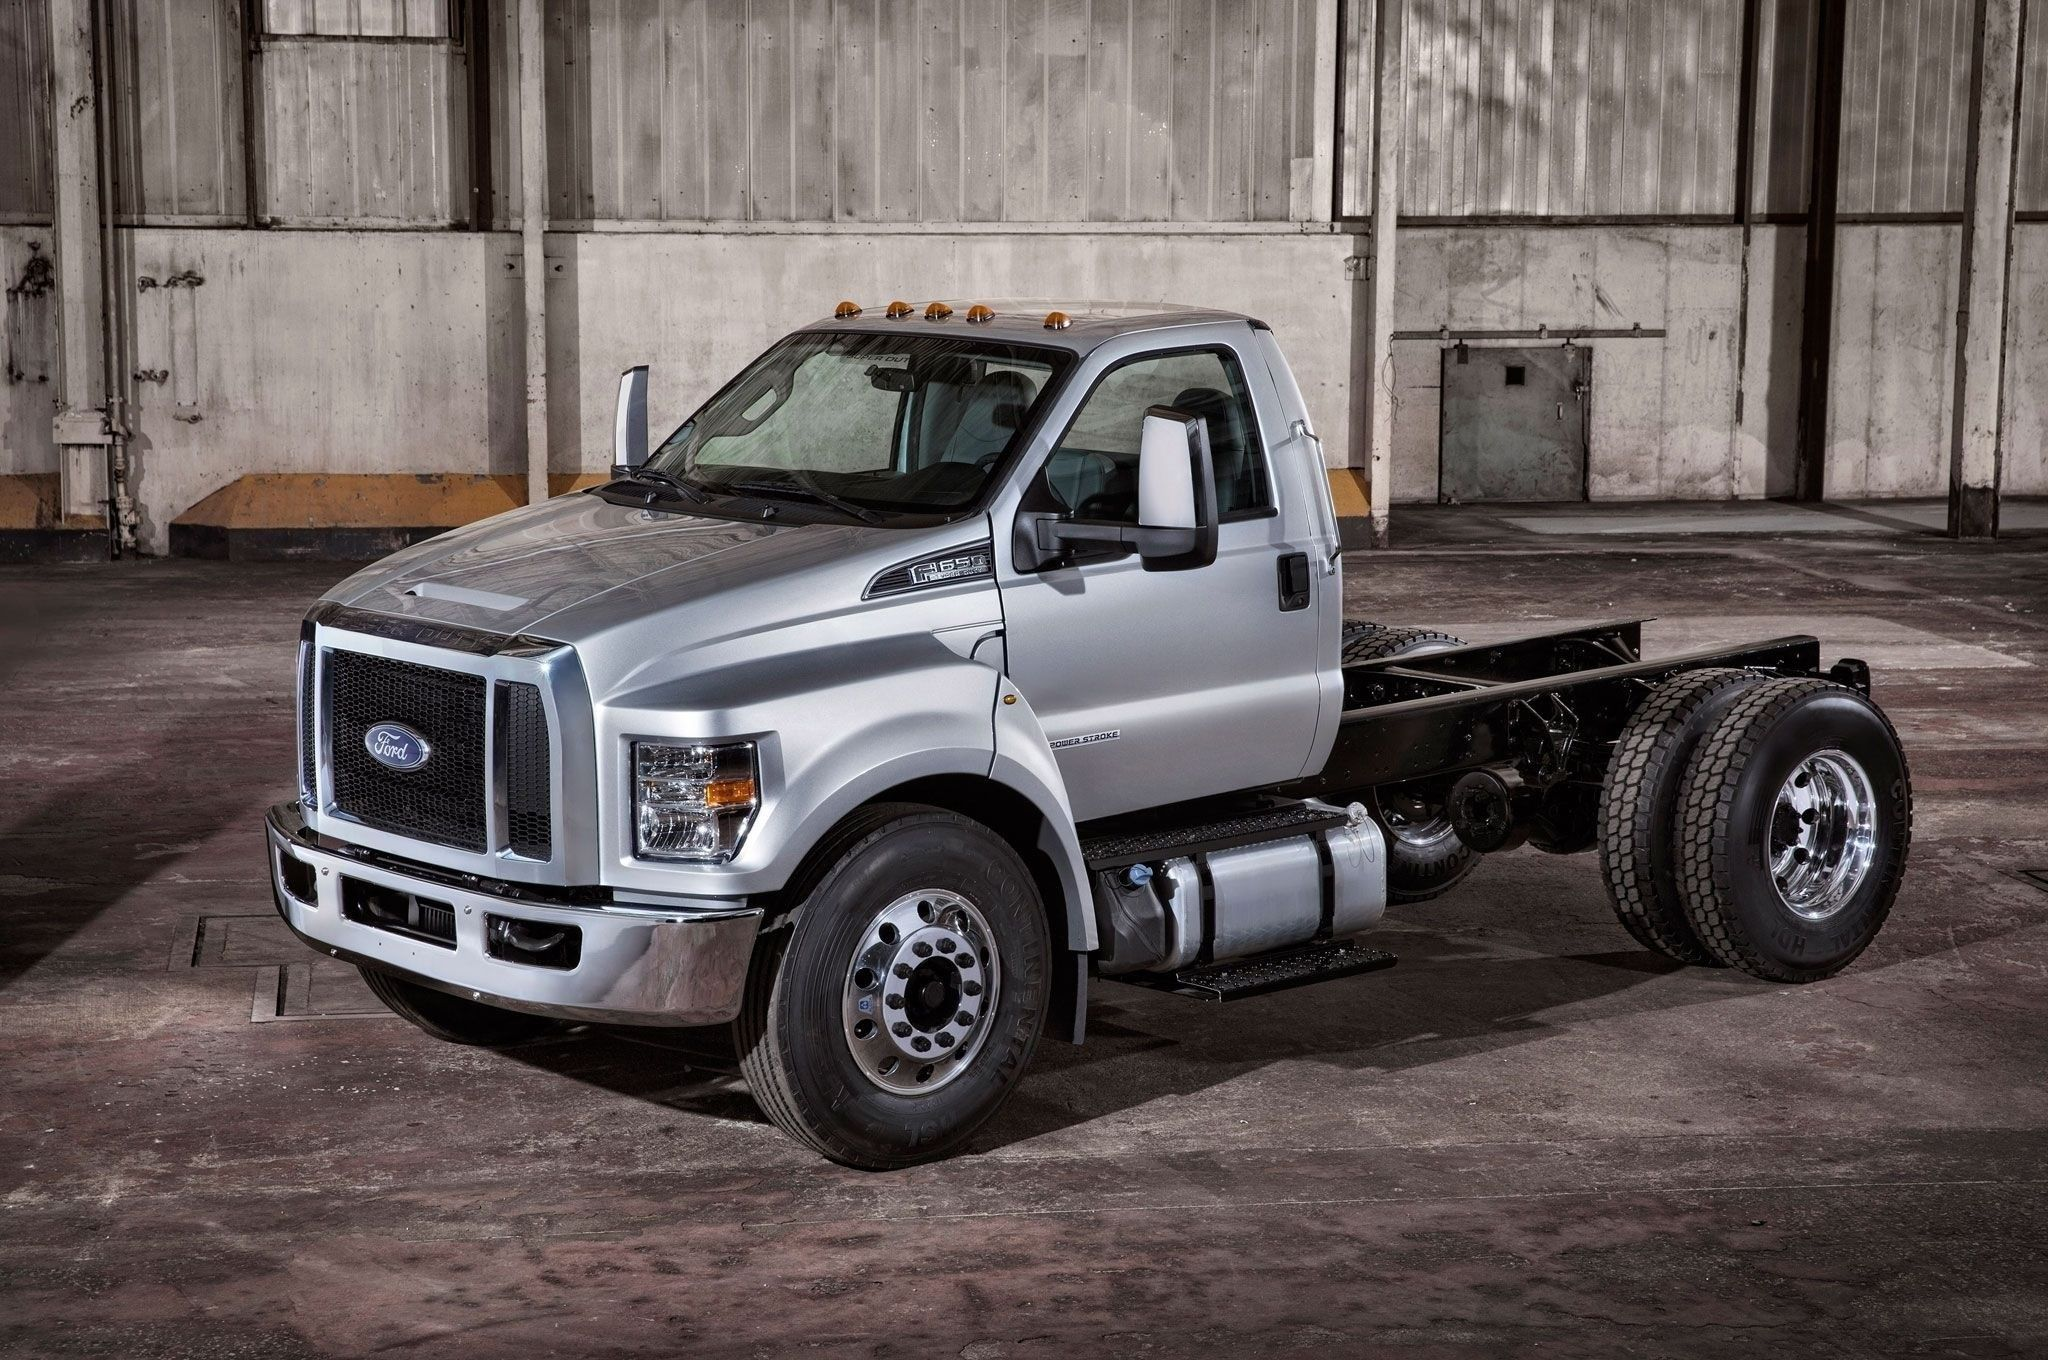 52 All New 2020 Ford F650 Pricing